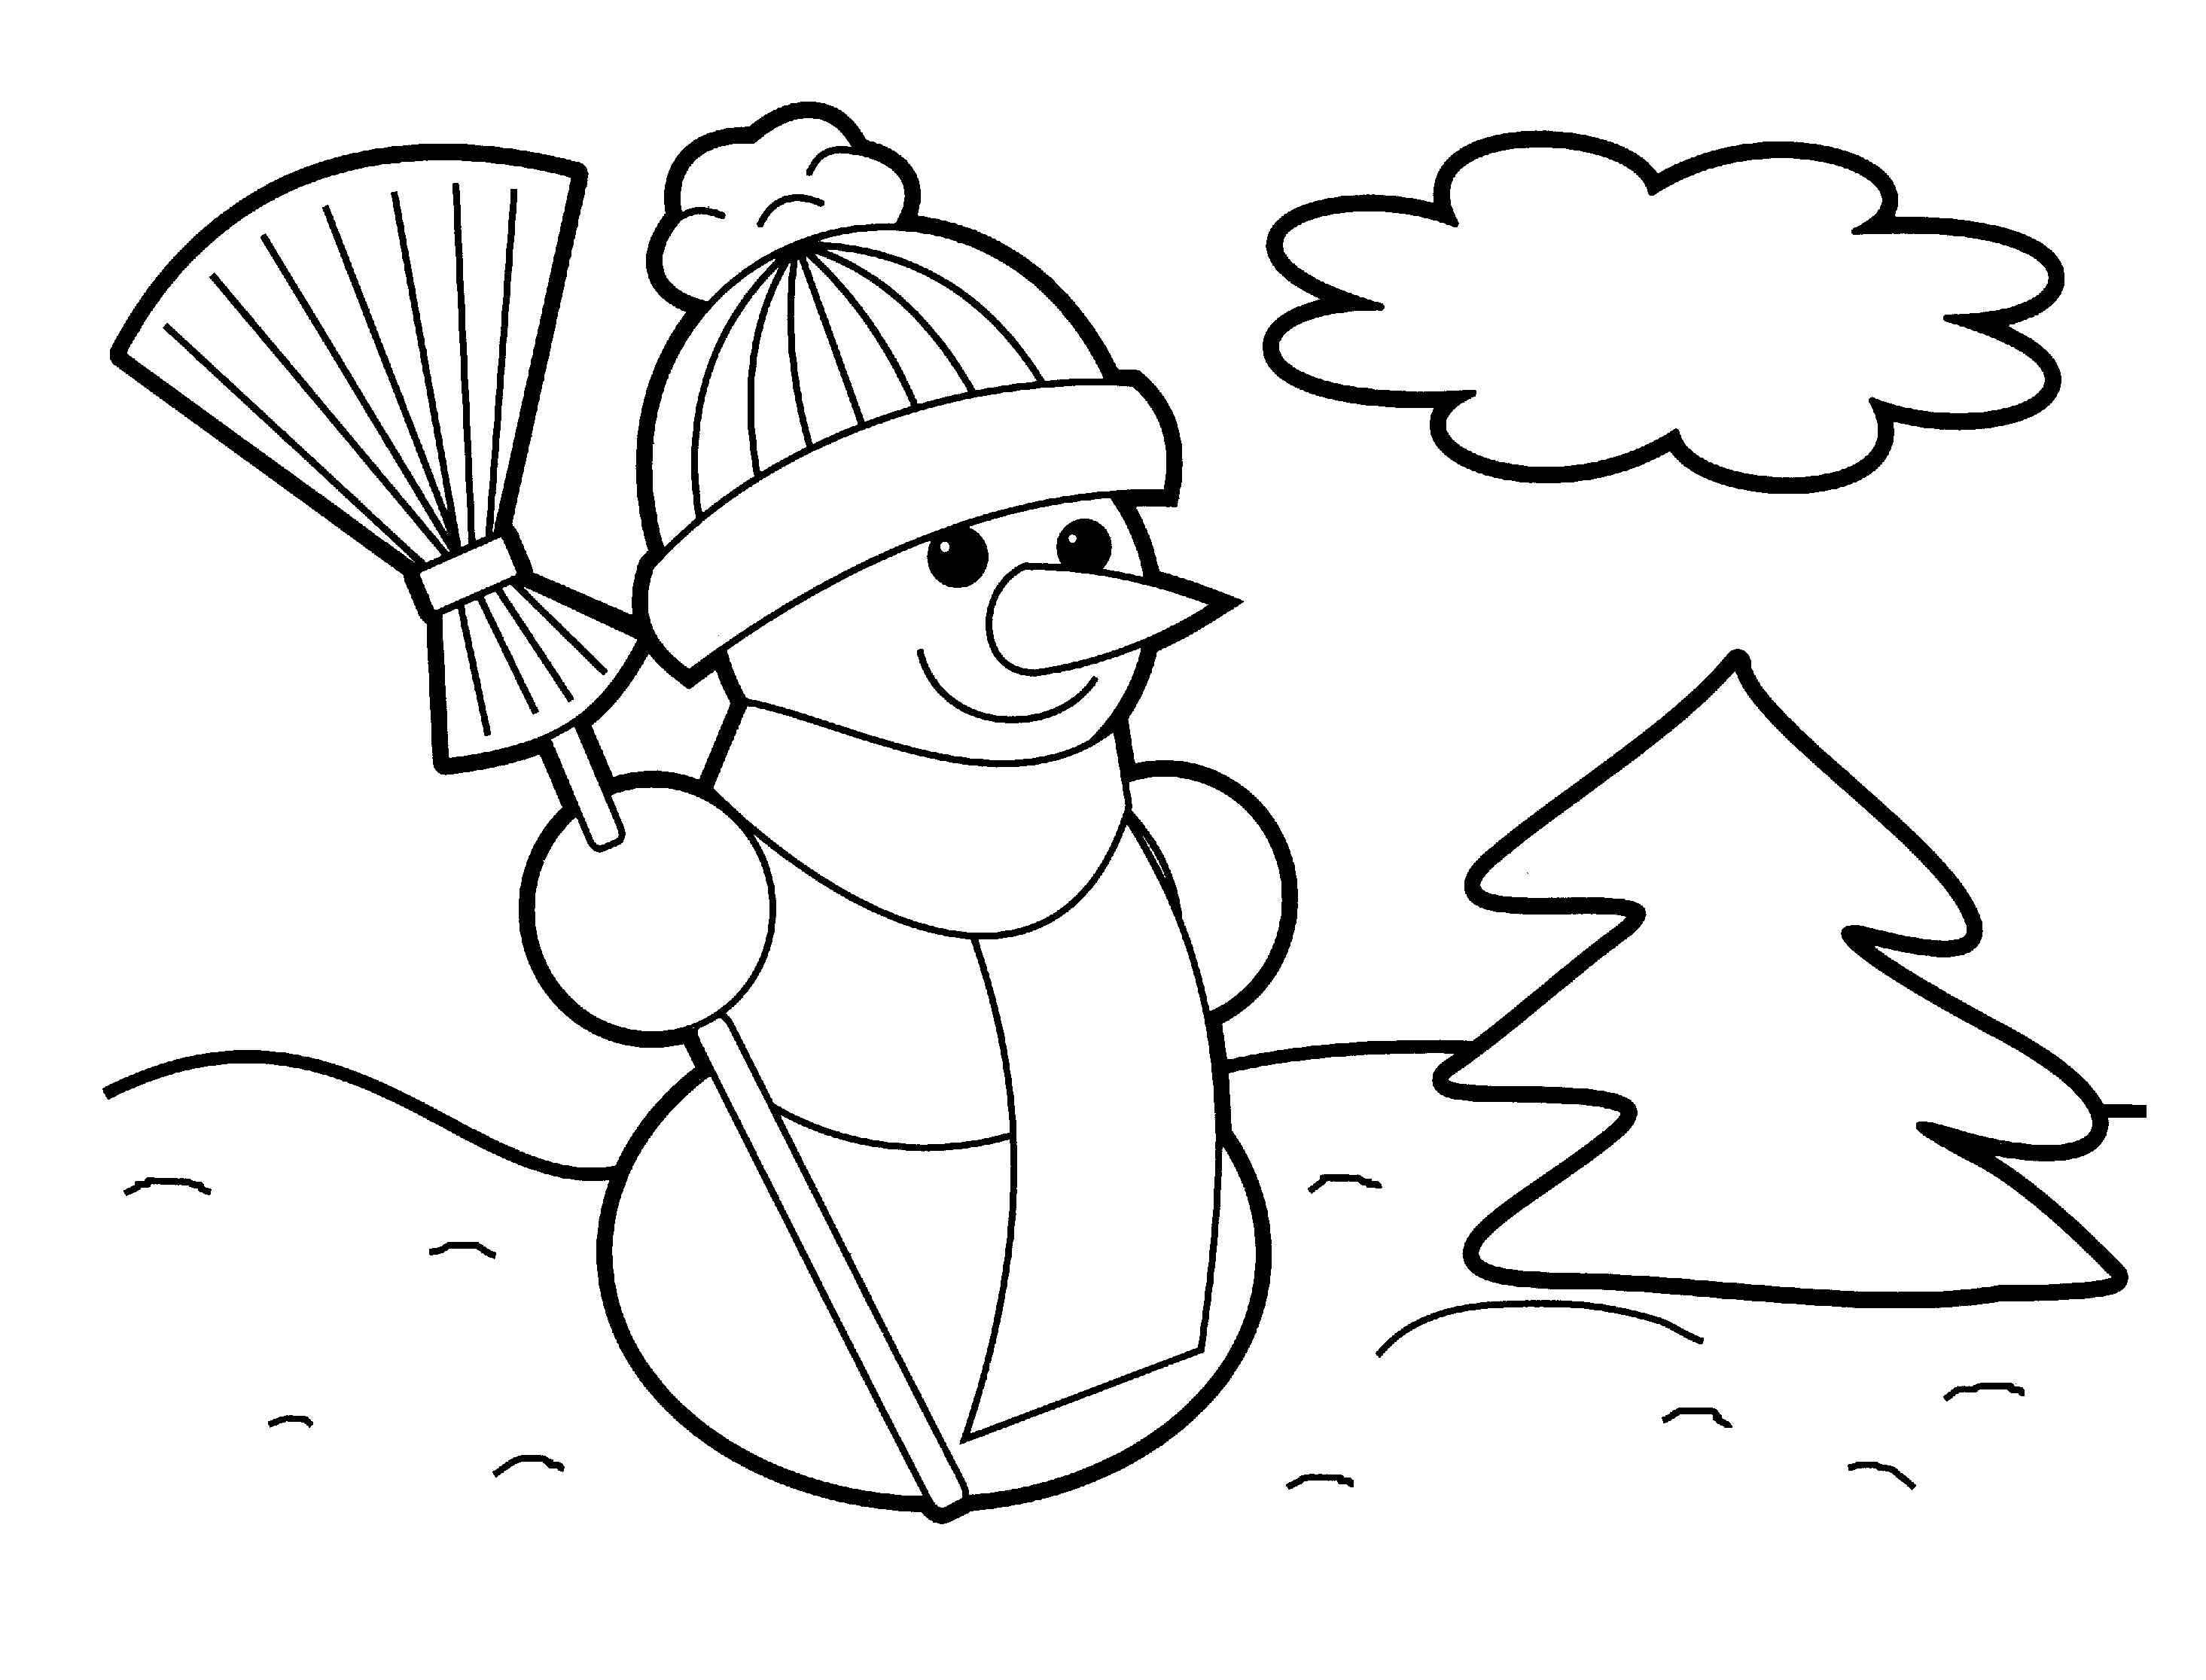 download christmas coloring pages 1 print - Christmas Print Coloring Pages